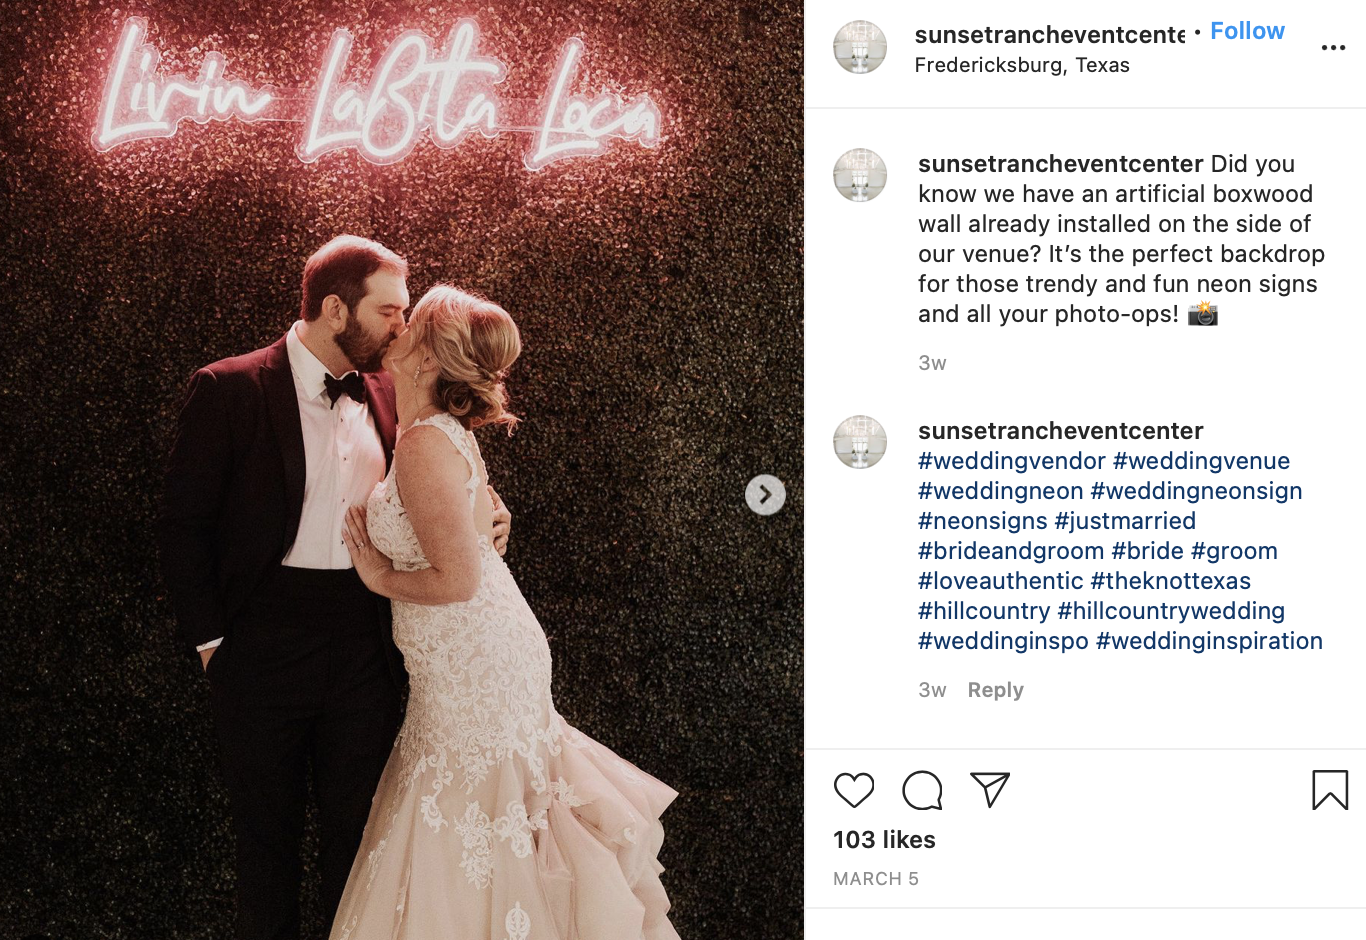 couple posing in front of the neon sign at their wedding